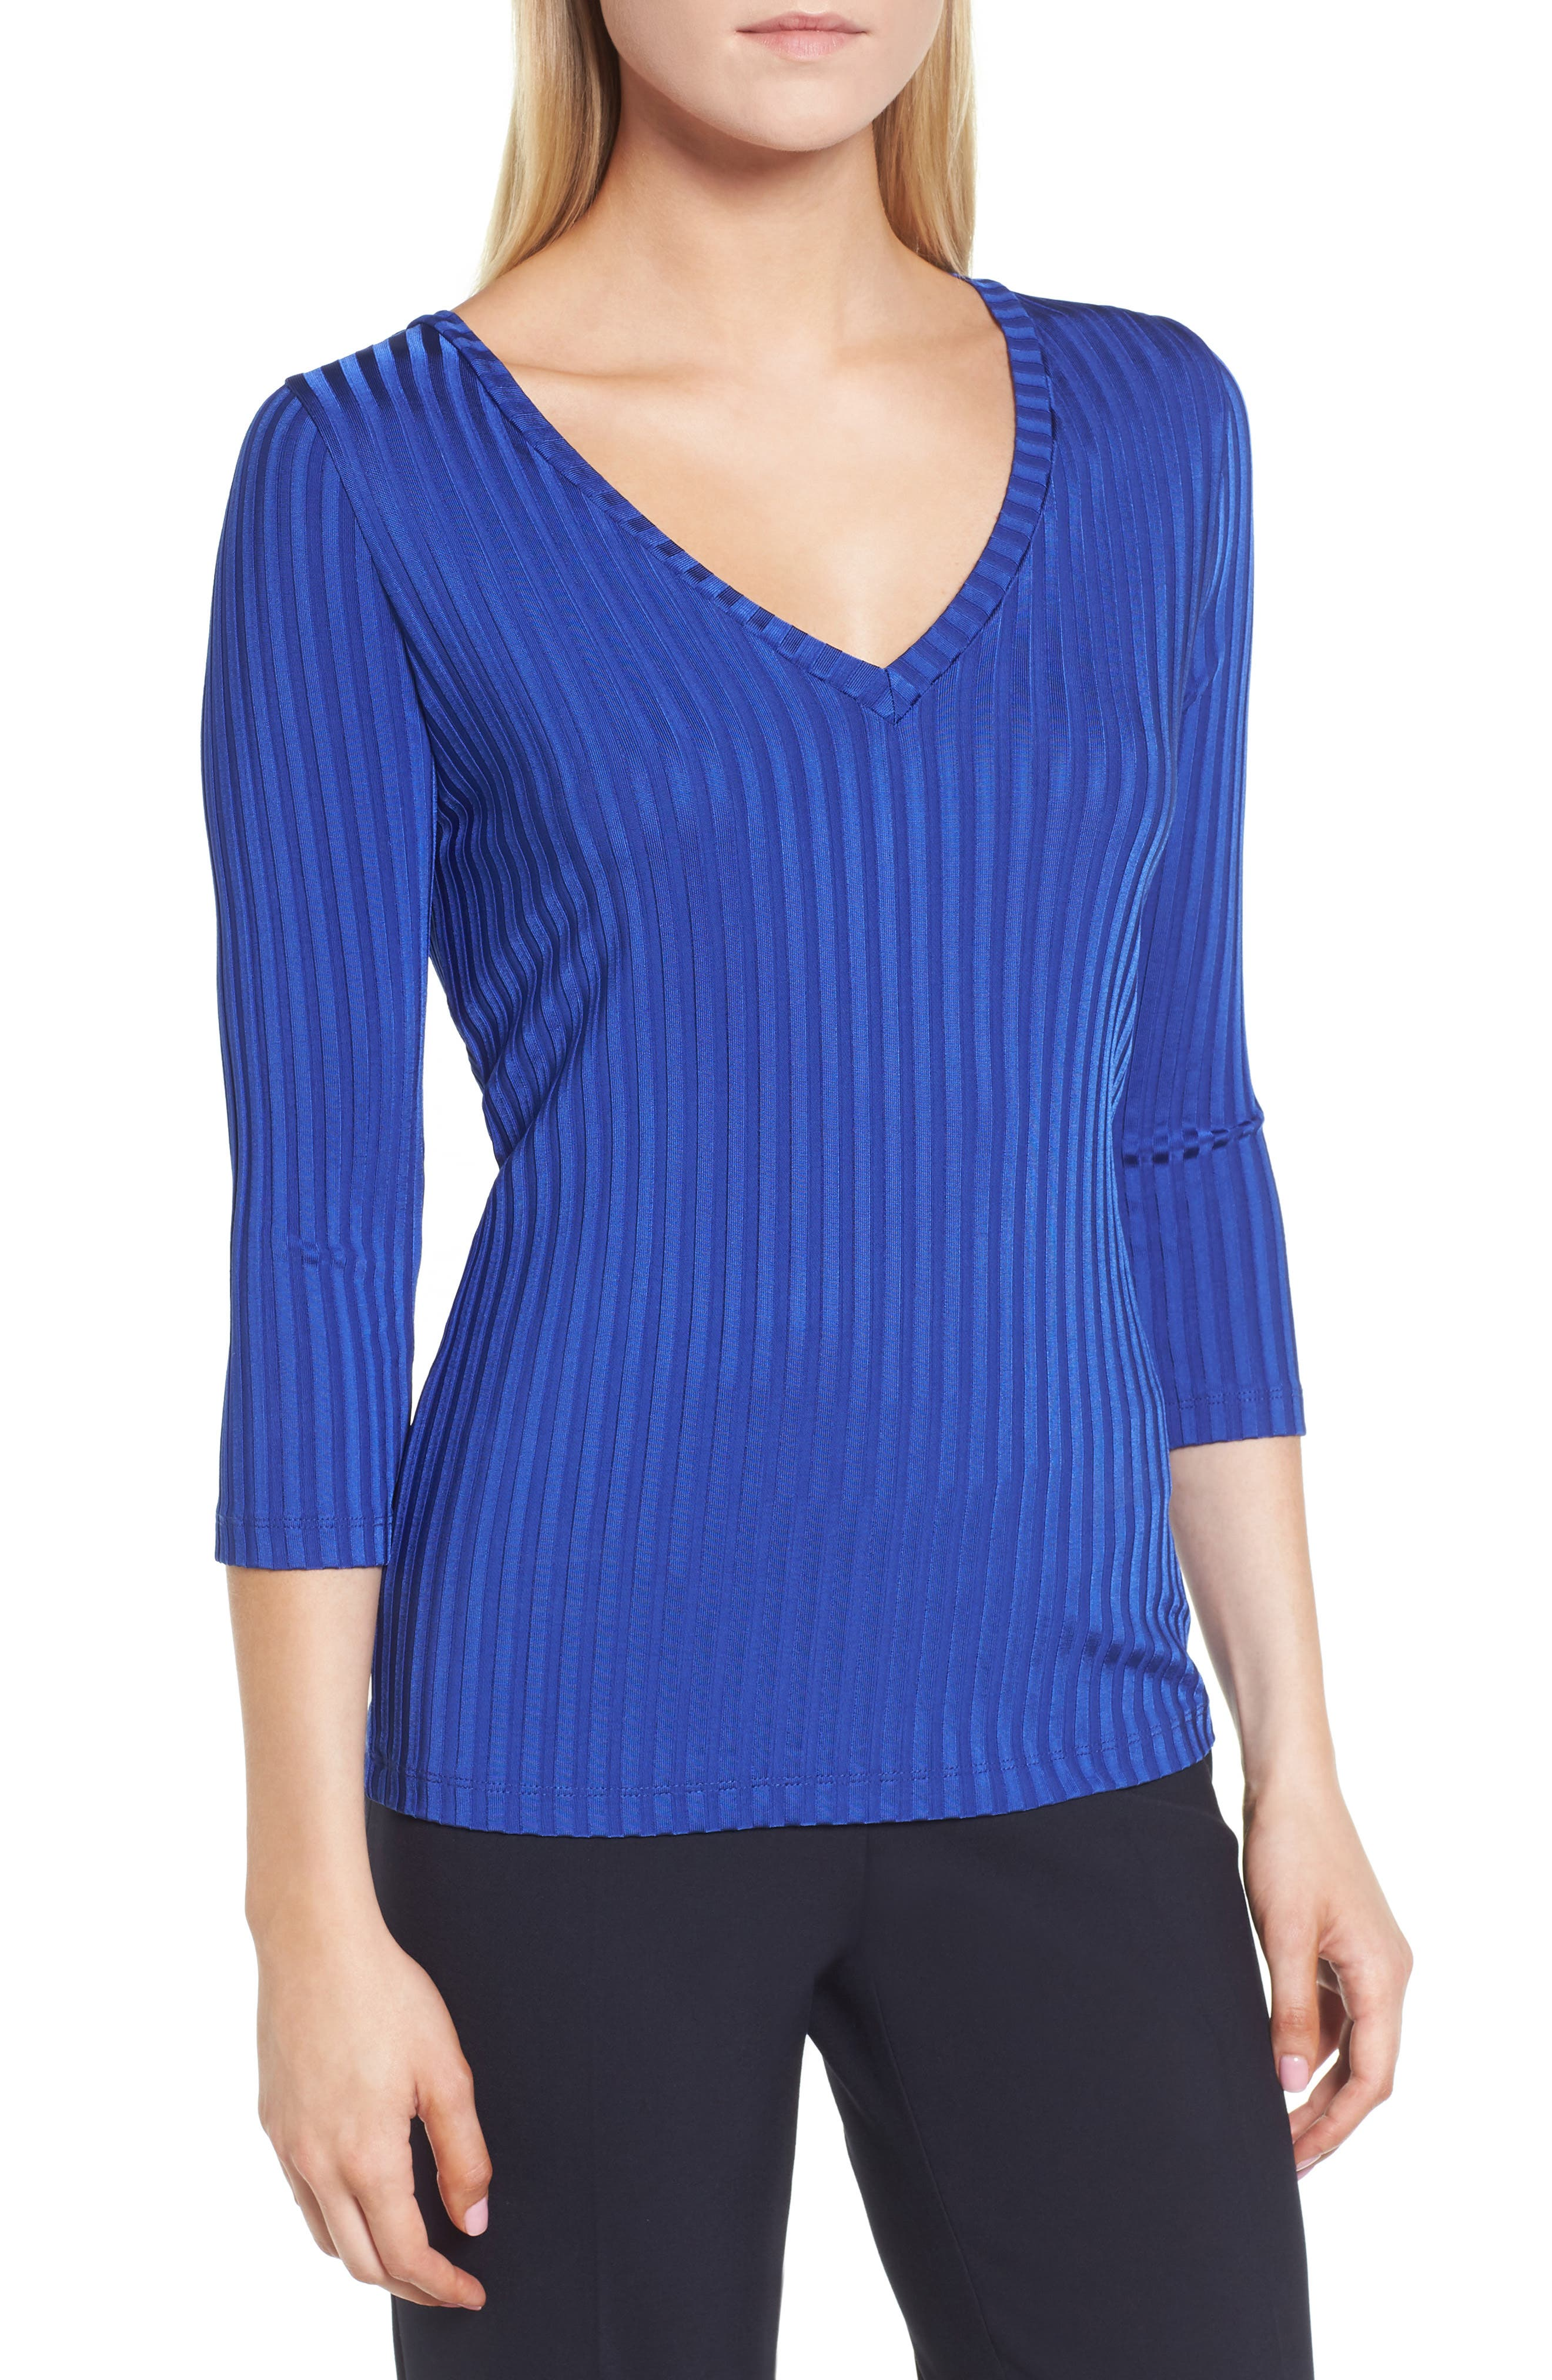 Etrica V-Neck Ribbed Top,                             Main thumbnail 1, color,                             Sailor Blue